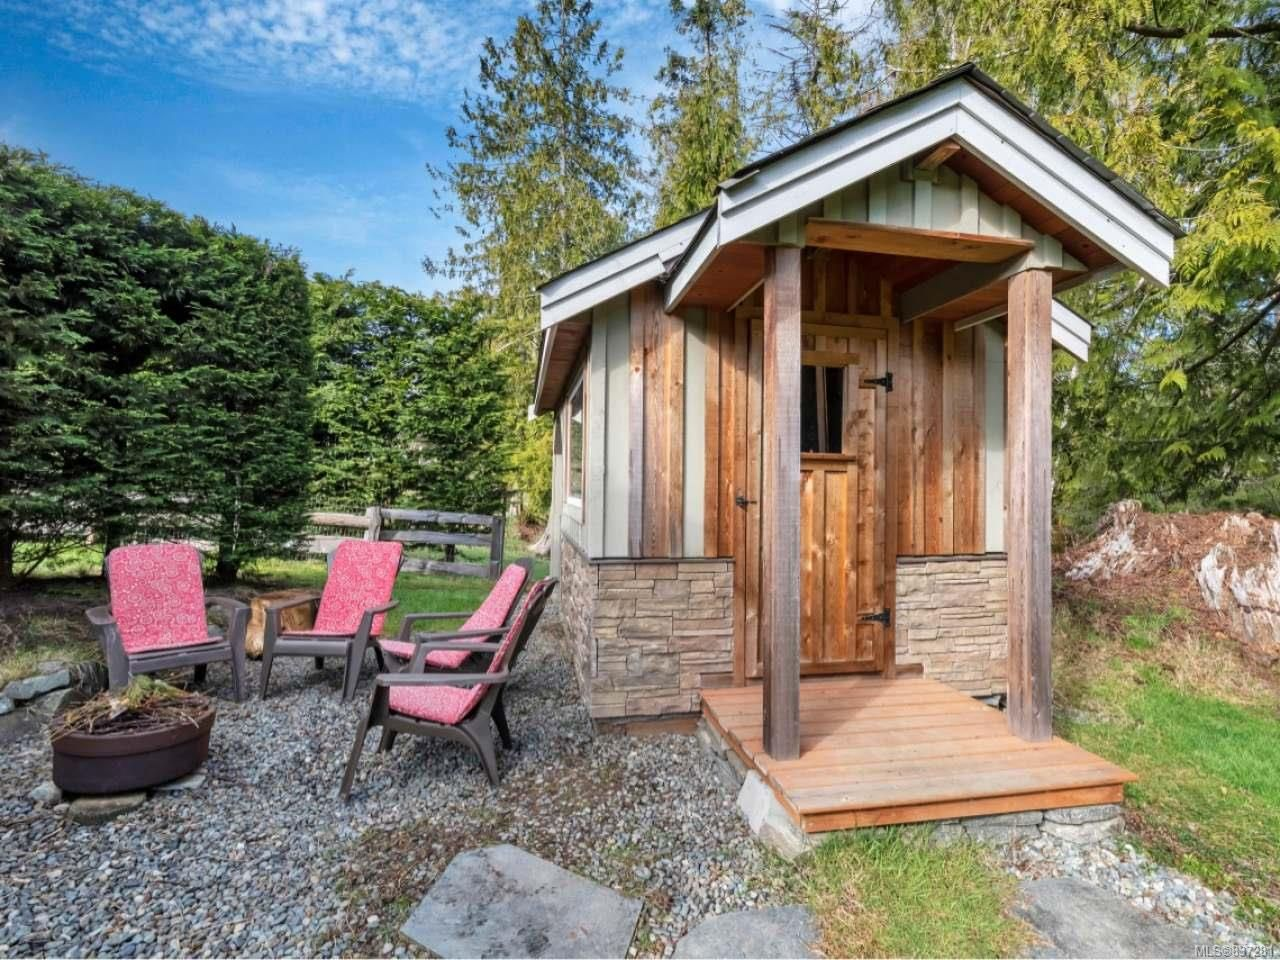 Photo 49: Photos: 925 Lilmac Rd in MILL BAY: ML Mill Bay House for sale (Malahat & Area)  : MLS®# 837281